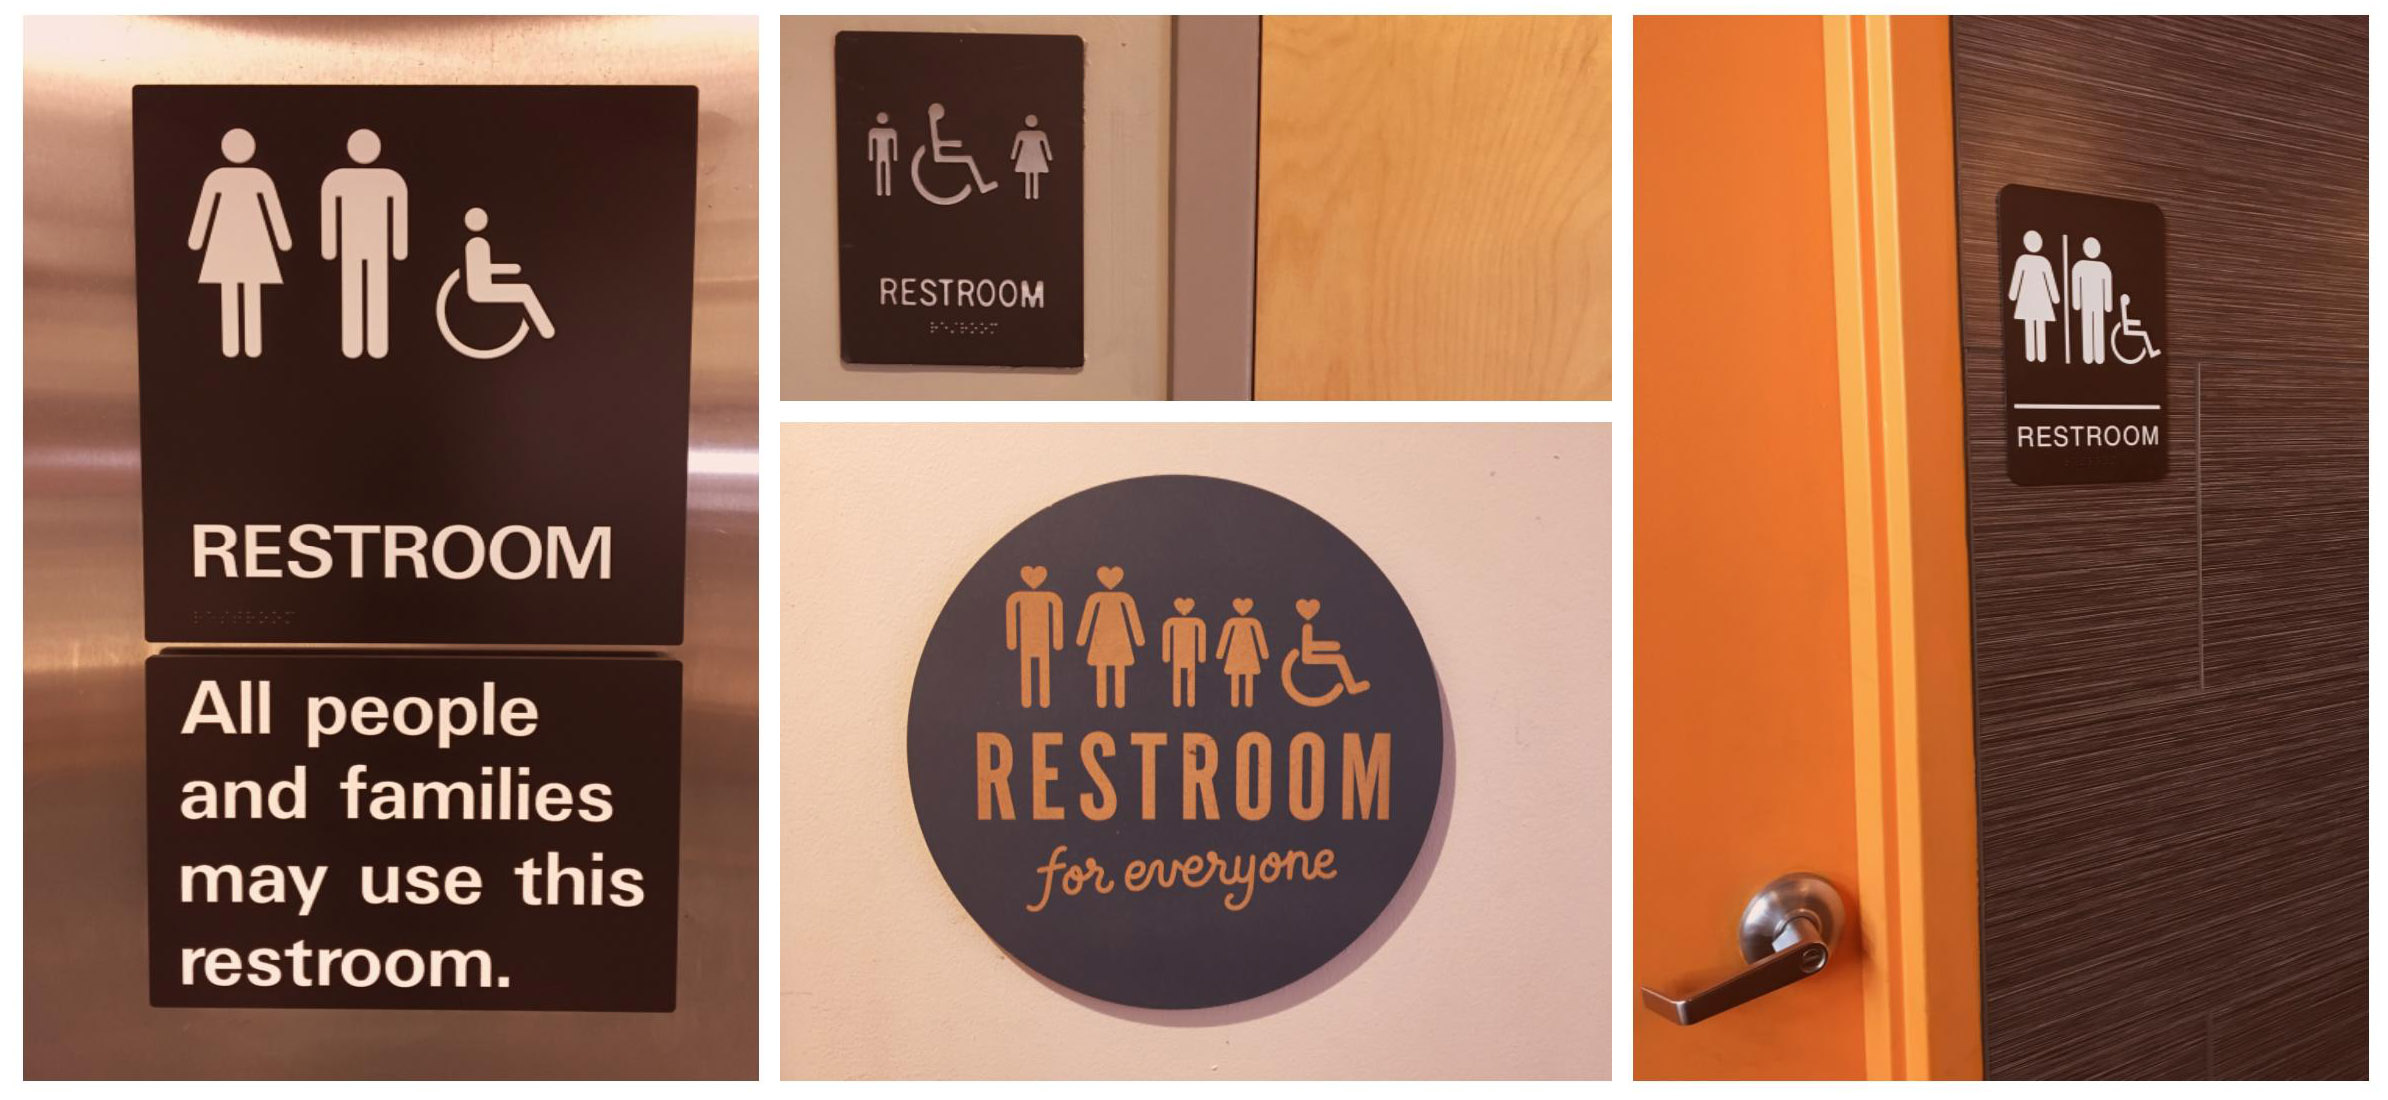 Four gender-neutral bathroom signs